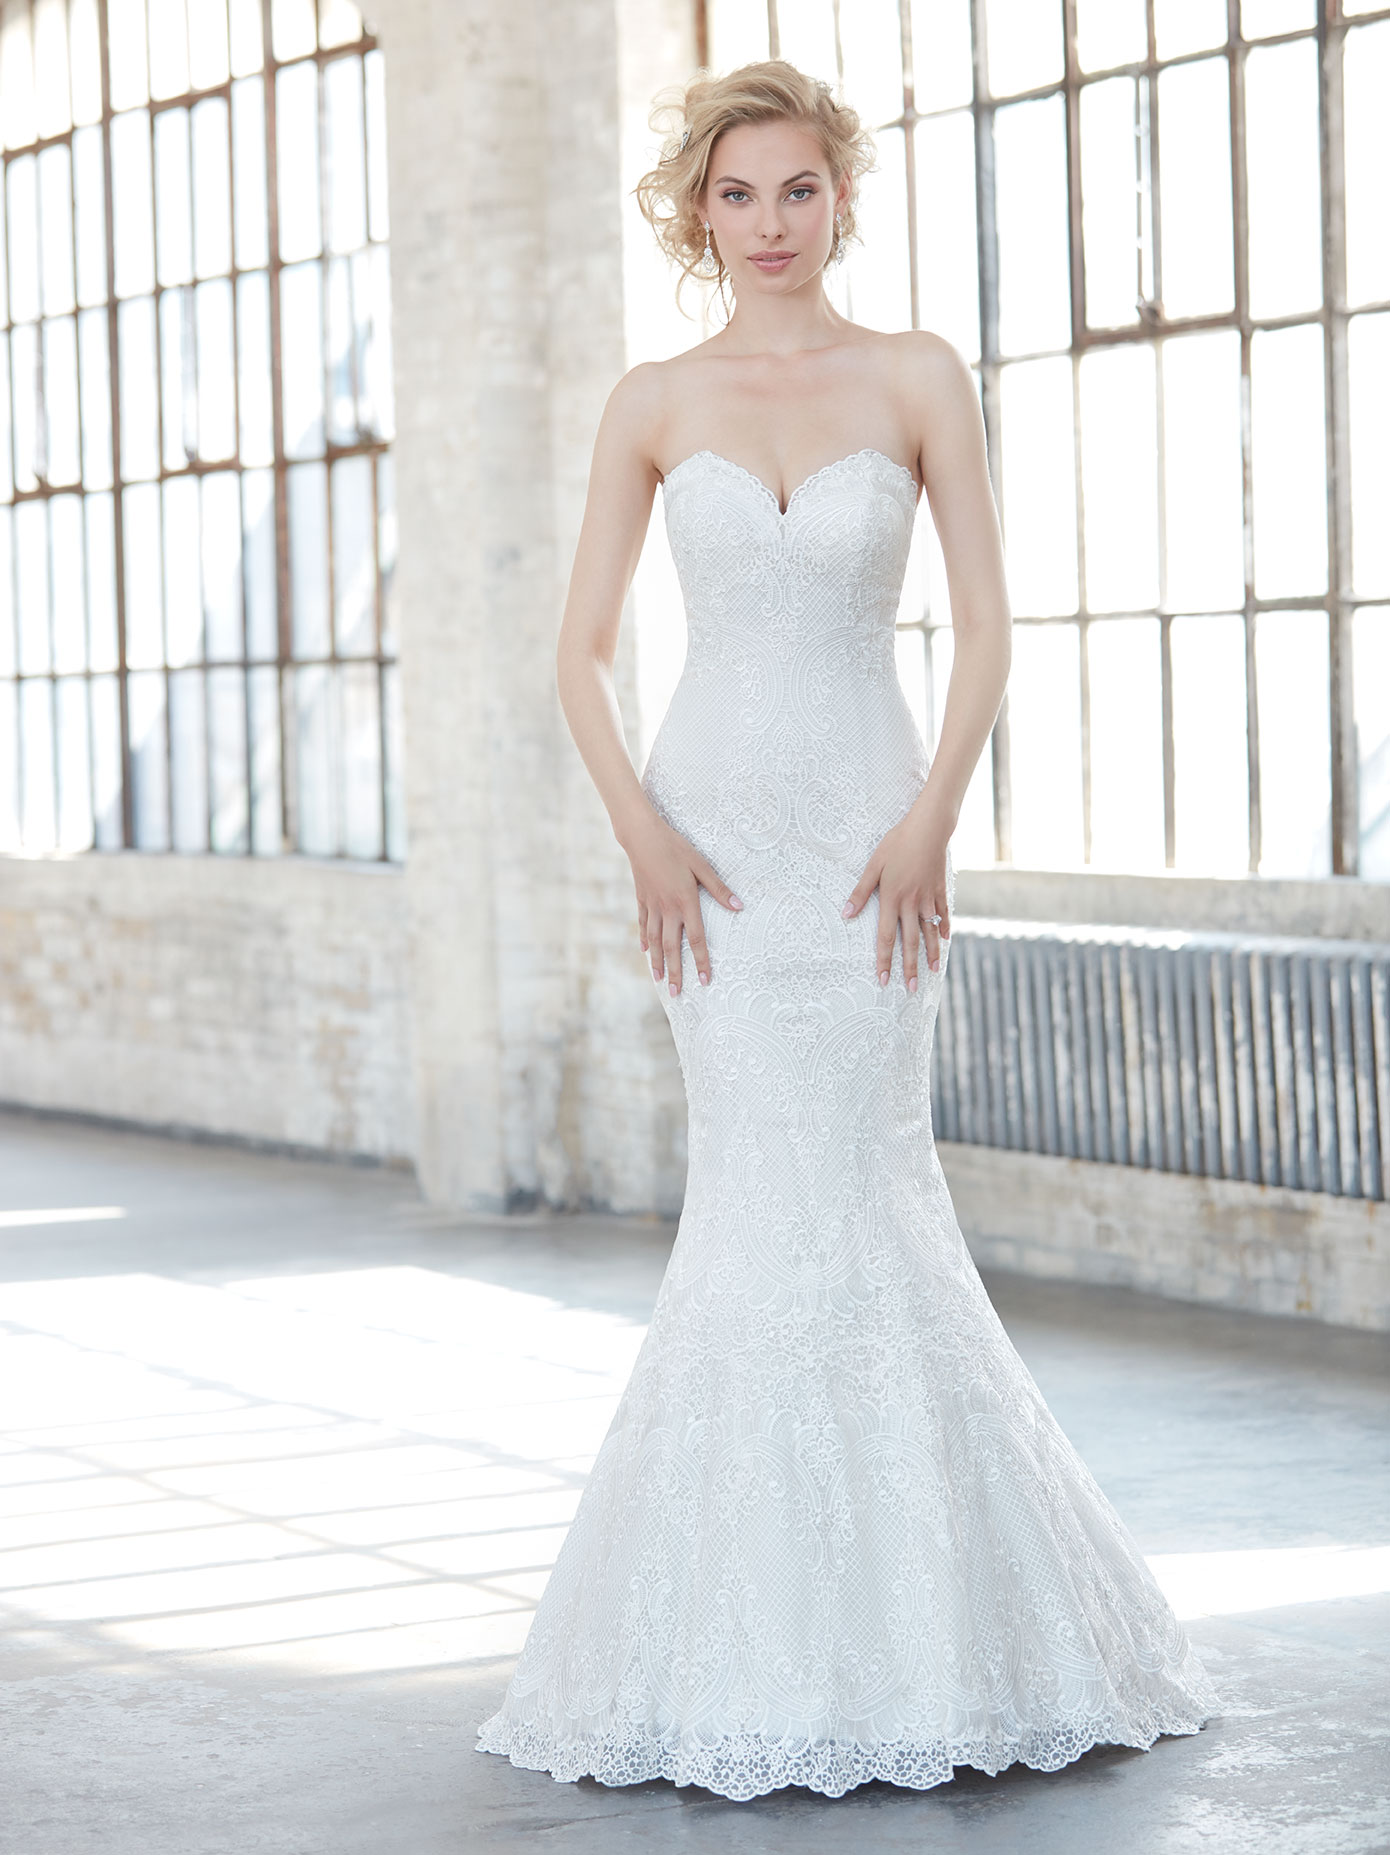 Strapless lace wedding dress featuring a sweetheart neckline, Madison James 2017 Trunk Show coming to Raffaele Ciuca, Melbourne